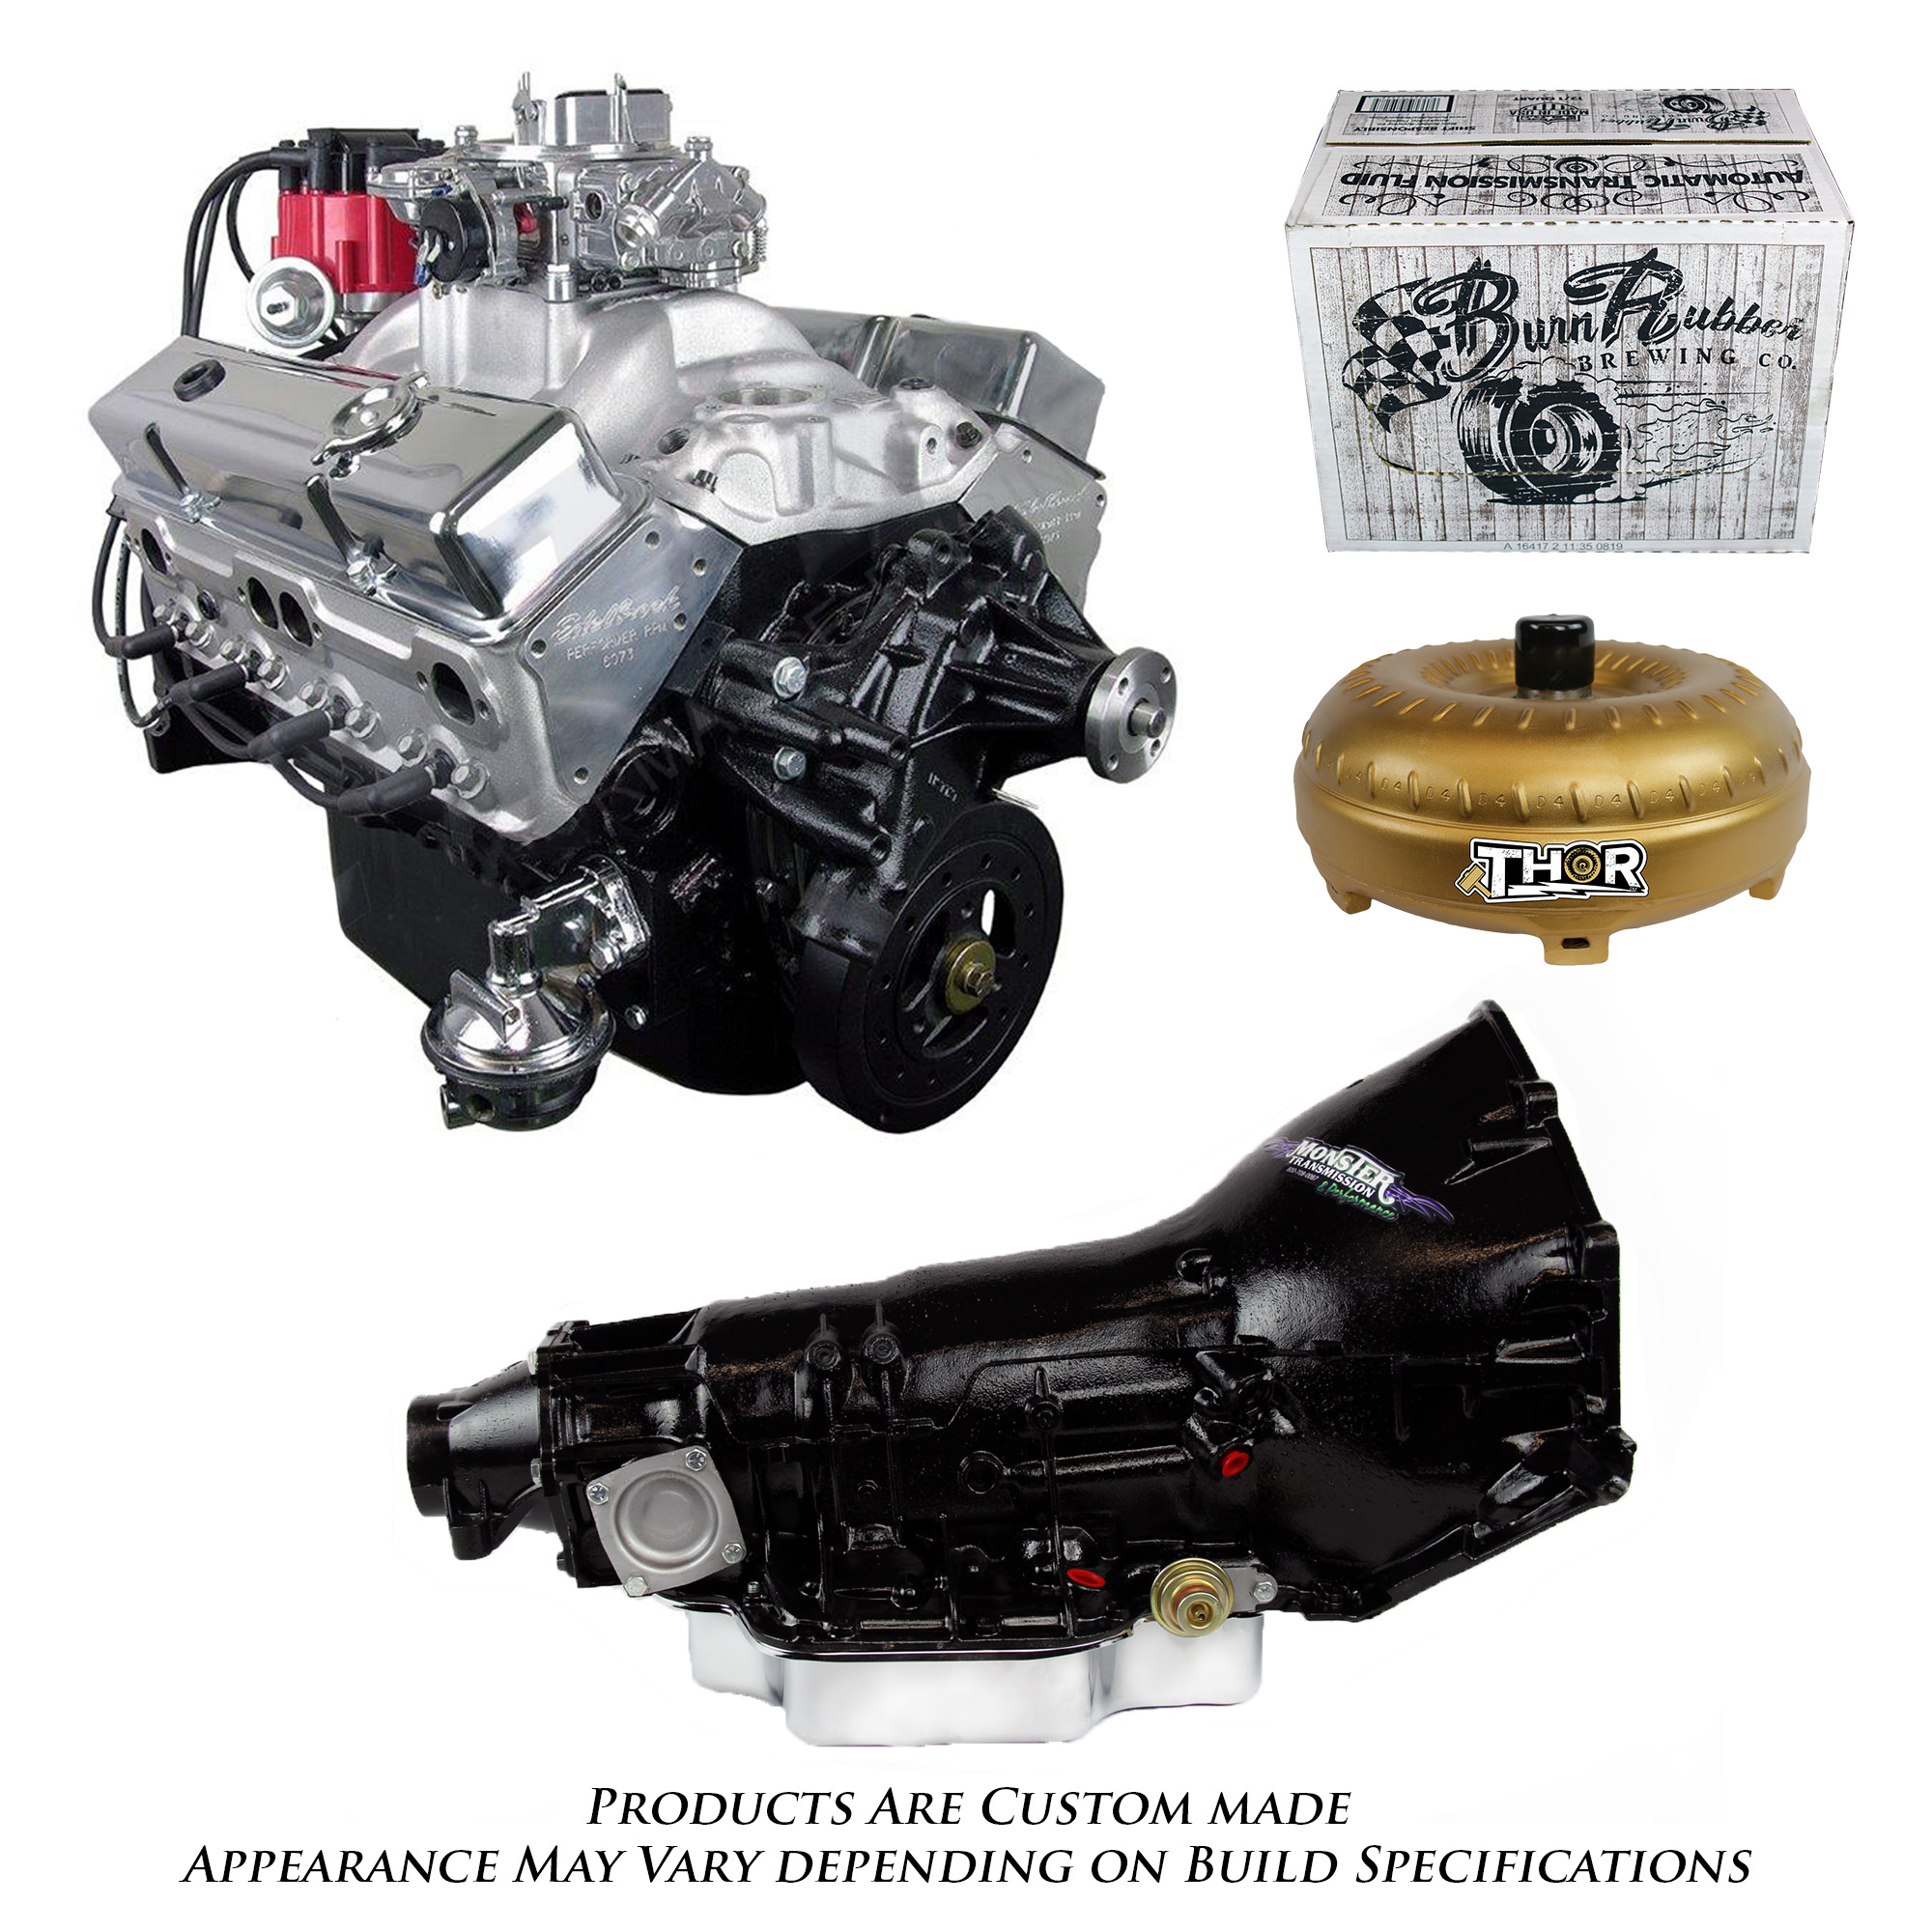 Chevy 350 Engine With Transmission For Sale: Monster Powertrain Package, Chevy 350 Engine And TH400